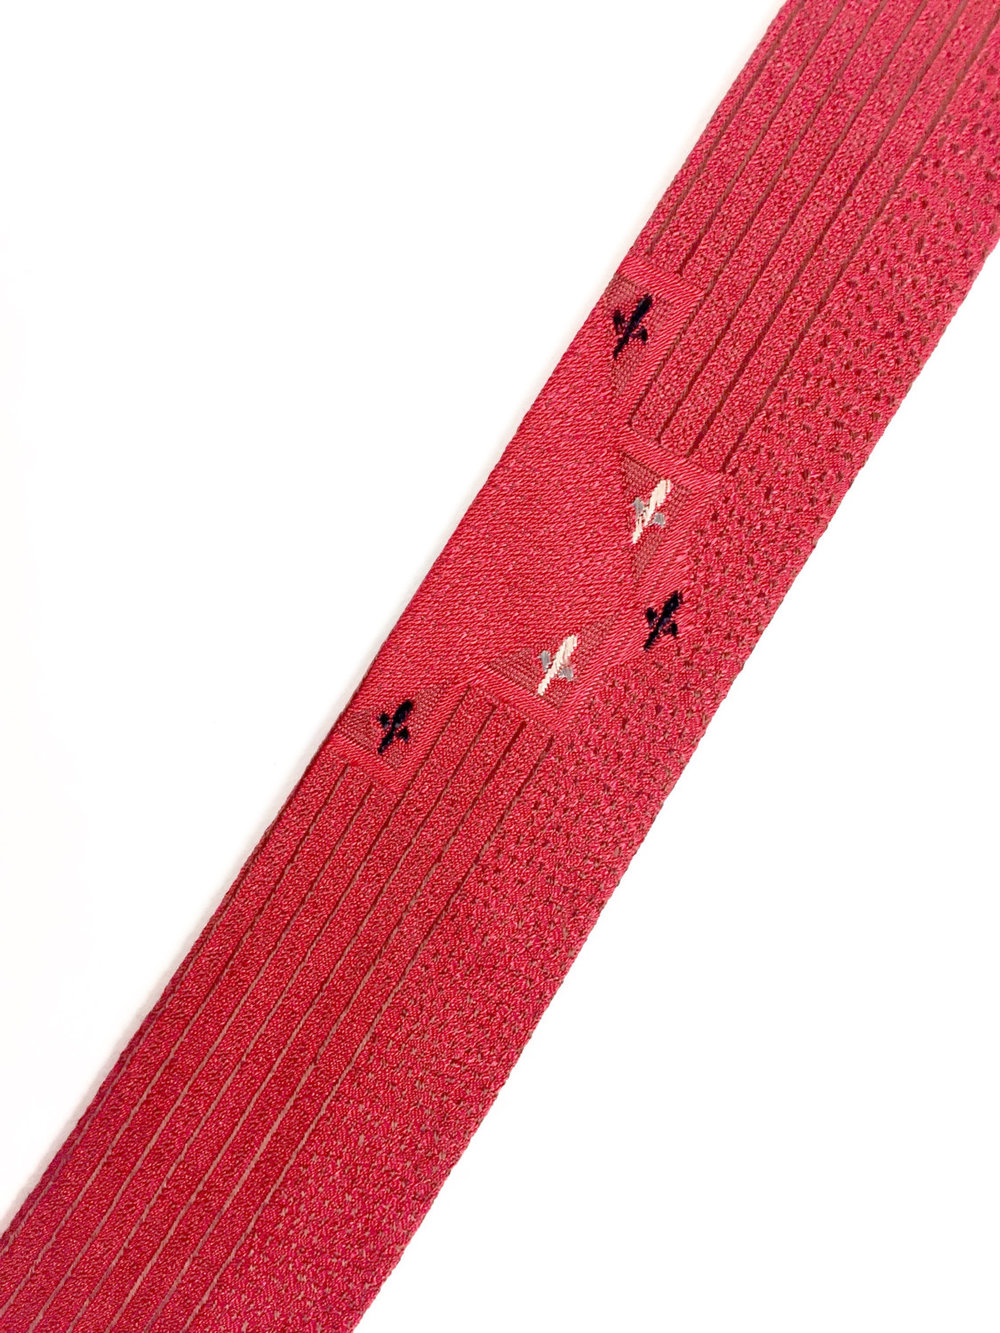 1960'sSkinny Necktie with embroidered Fleur-de-Lis